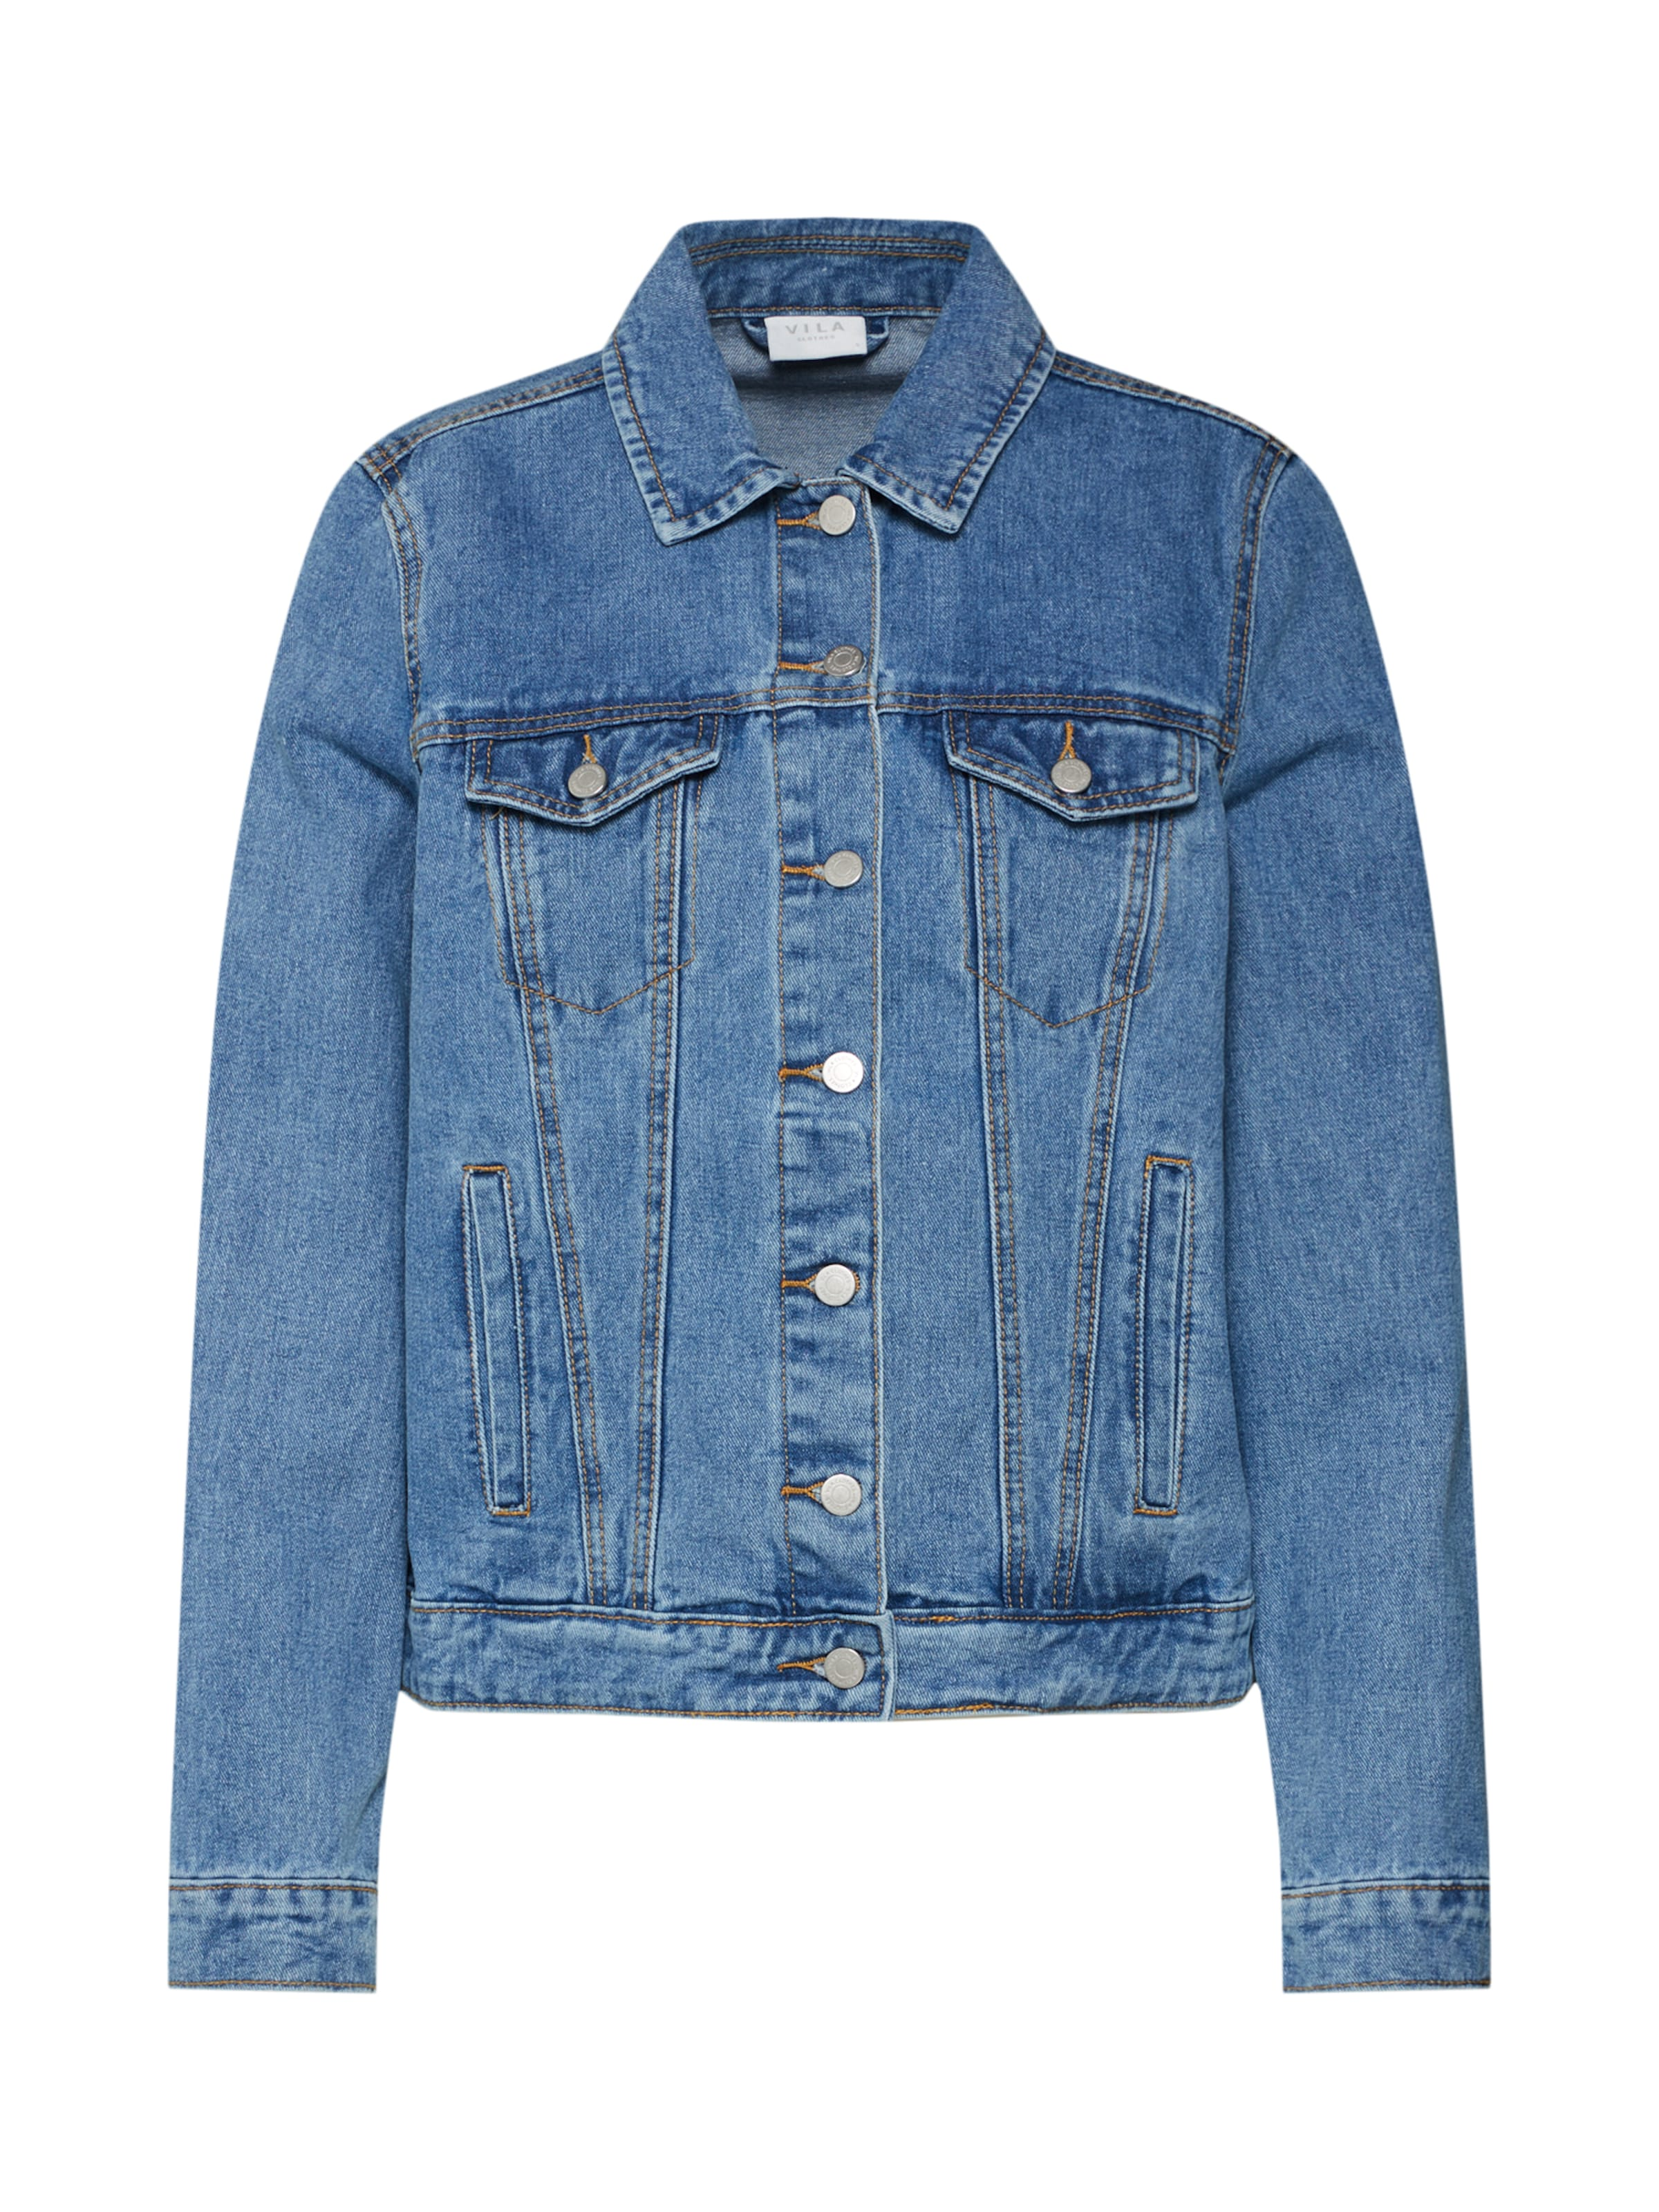 Vila 'vijules Blue Washed Jacket' Denim In Jacke K35uJc1TlF